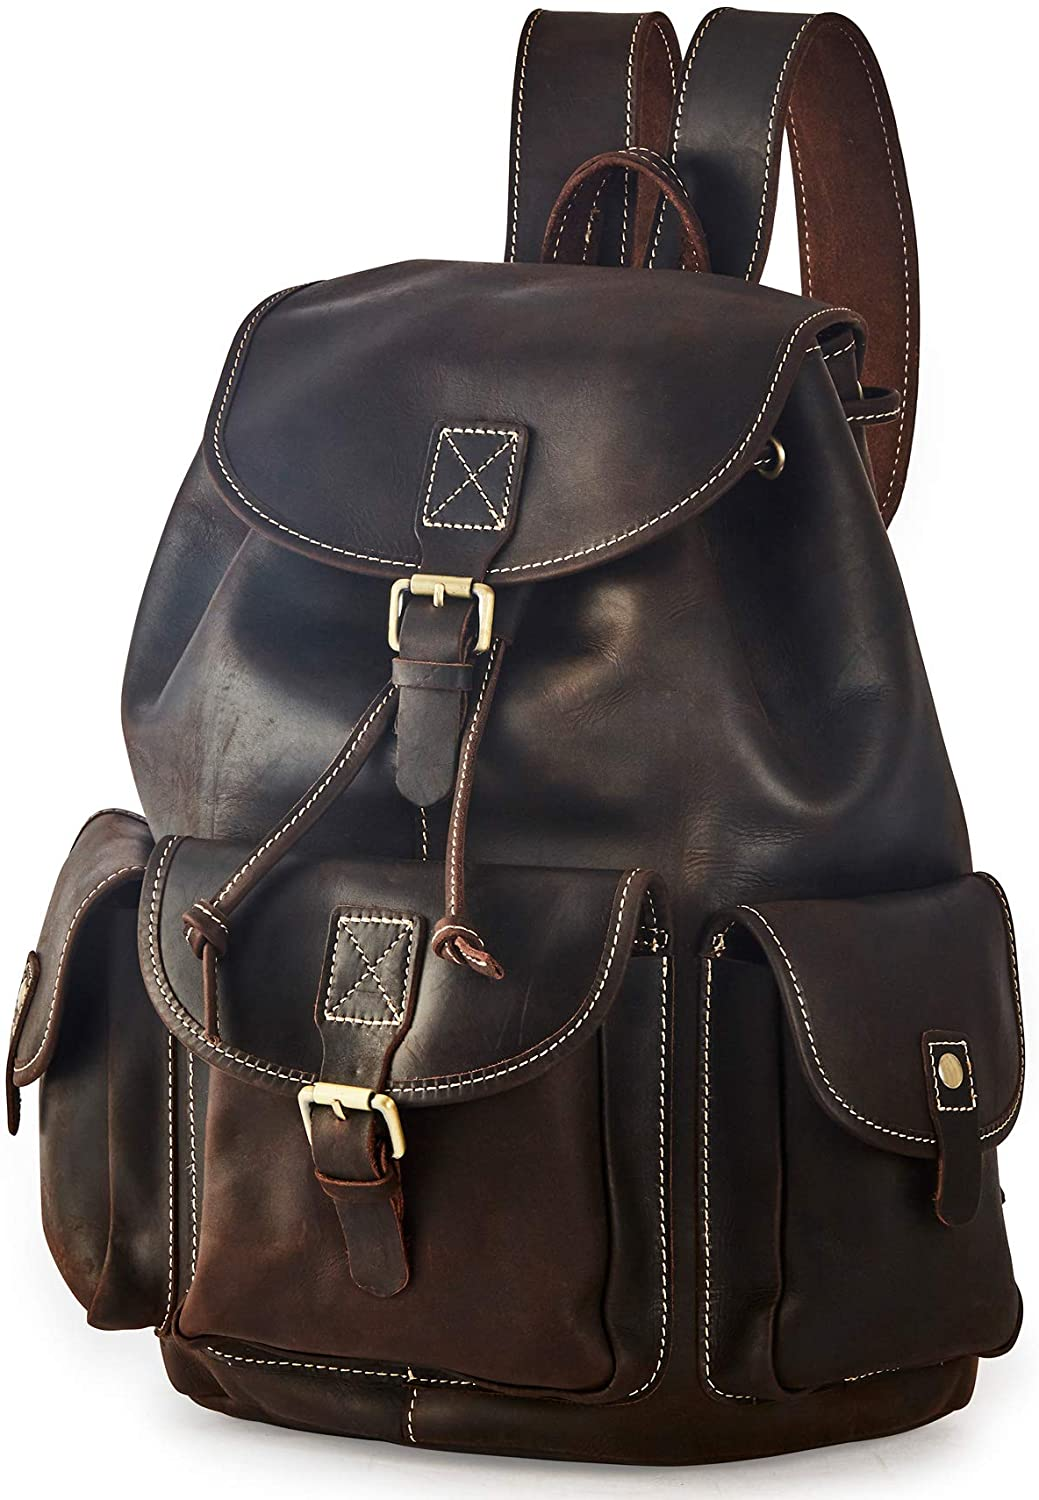 BRASS TACKS Leathercraft Mens Genuine Leather Vintage Utility Rubbed Cinched Backpack with Buckle Closures